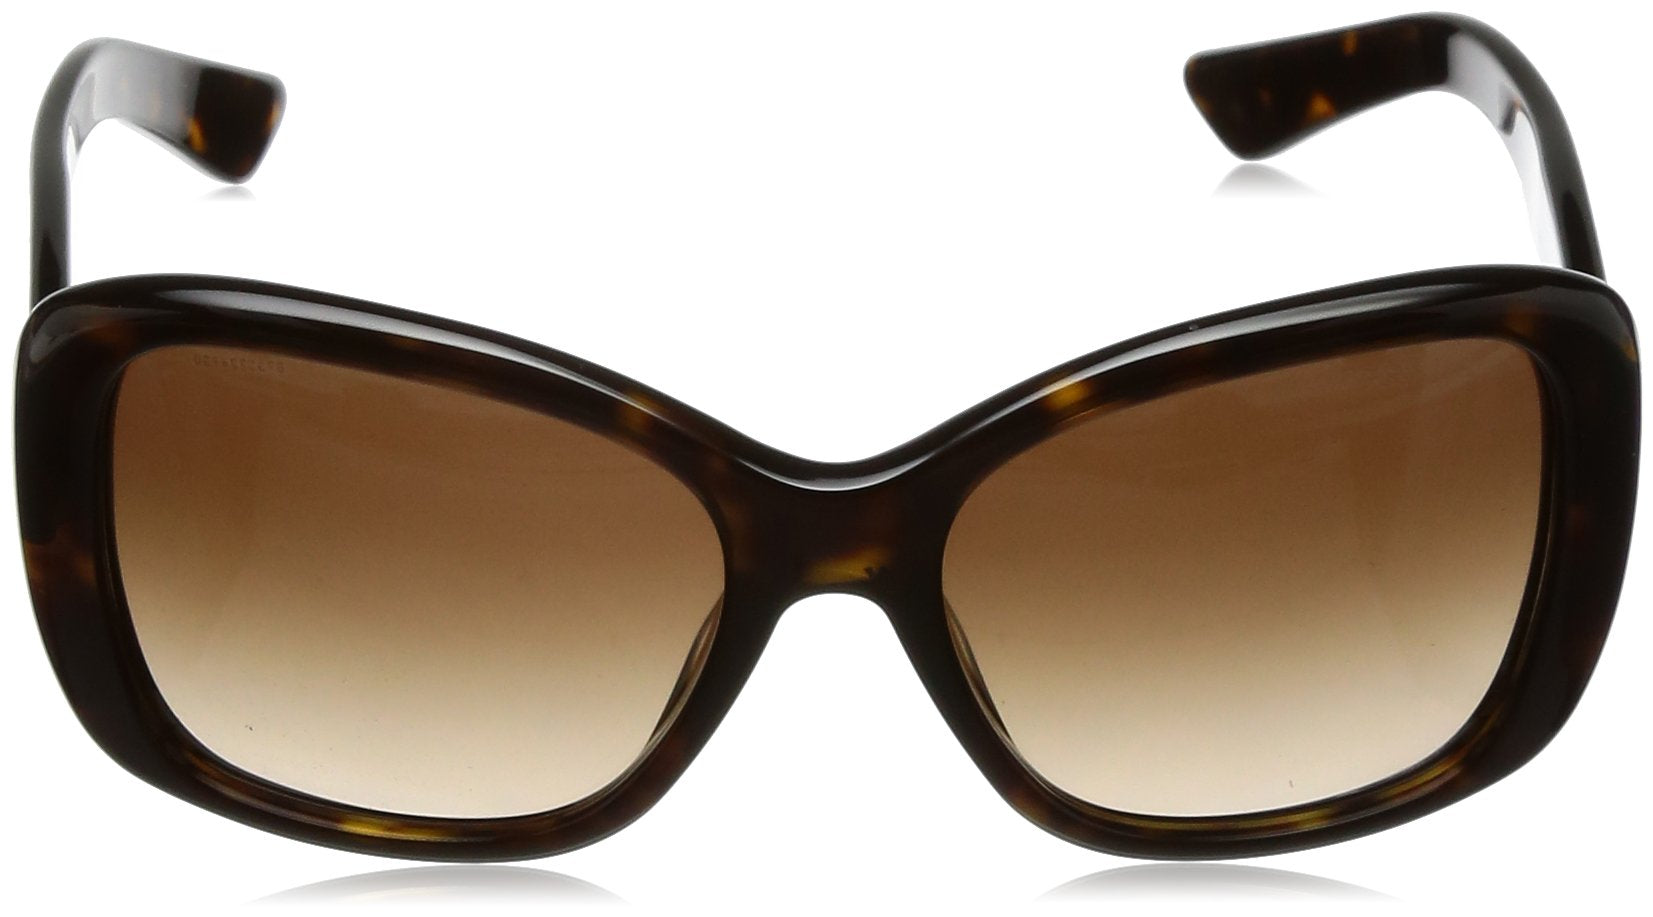 Prada 0Pr32Ps 2Au6S1 57 Occhiali da Sole, Marrone (Havana/Brown Gradient), Donna Marche Famose